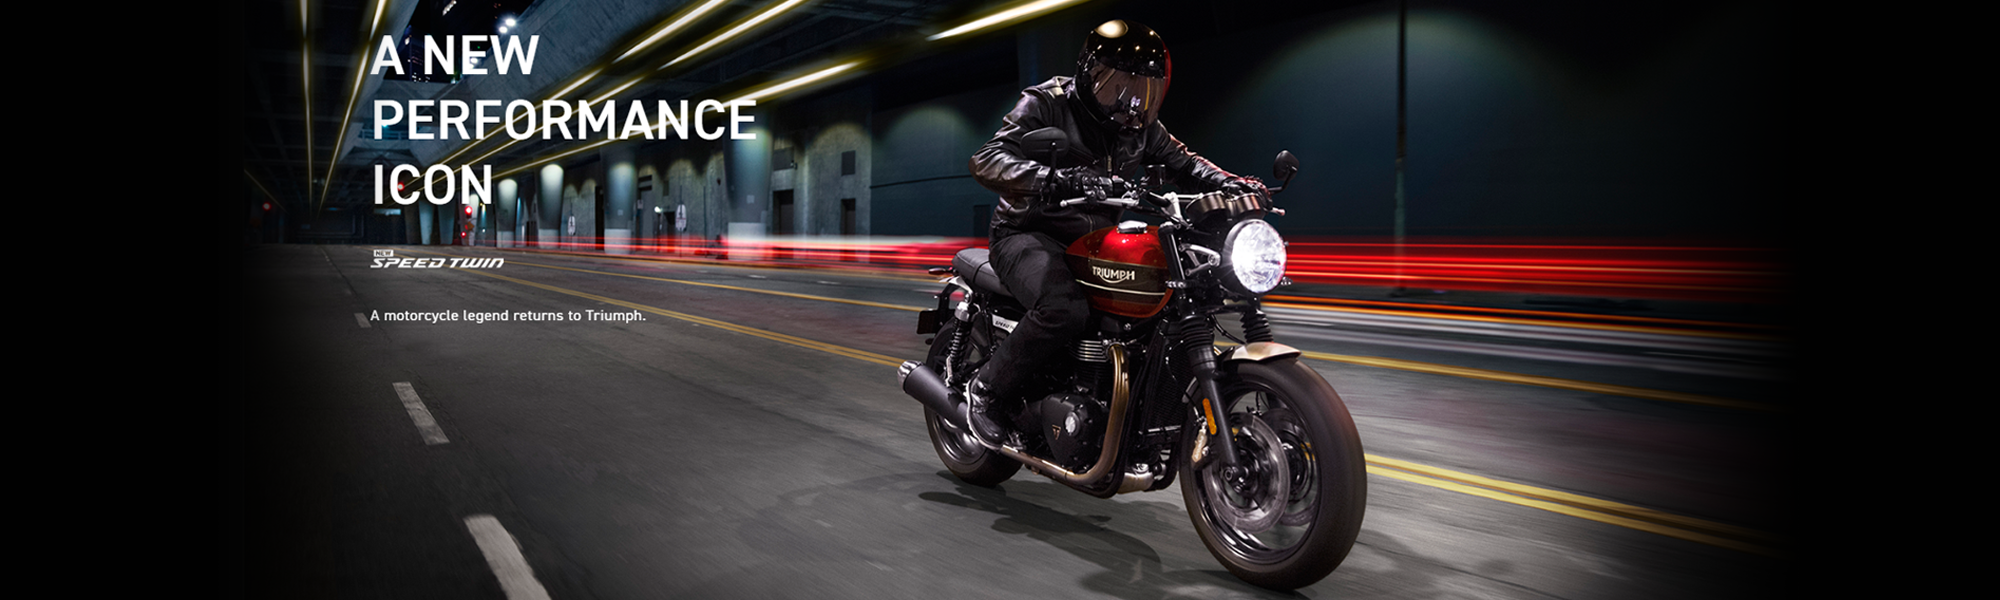 A New Performance Icon Triumph Speed Twin